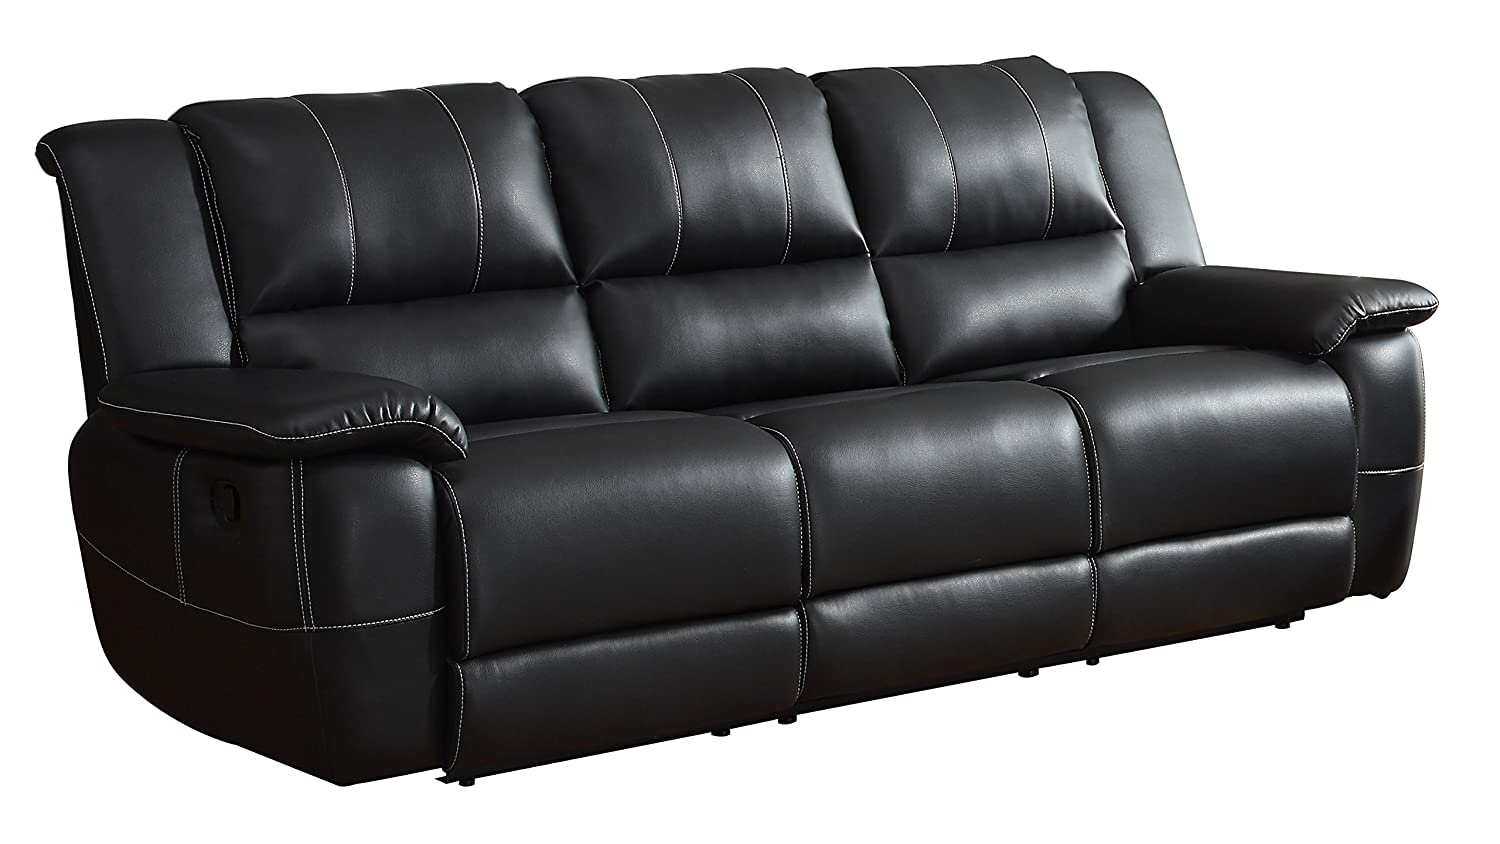 Amazon.com Homelegance Bonded Leather Black Double Reclining Sofa Kitchen u0026 Dining  sc 1 st  Amazon.com & Amazon.com: Homelegance Bonded Leather Black Double Reclining Sofa ... islam-shia.org